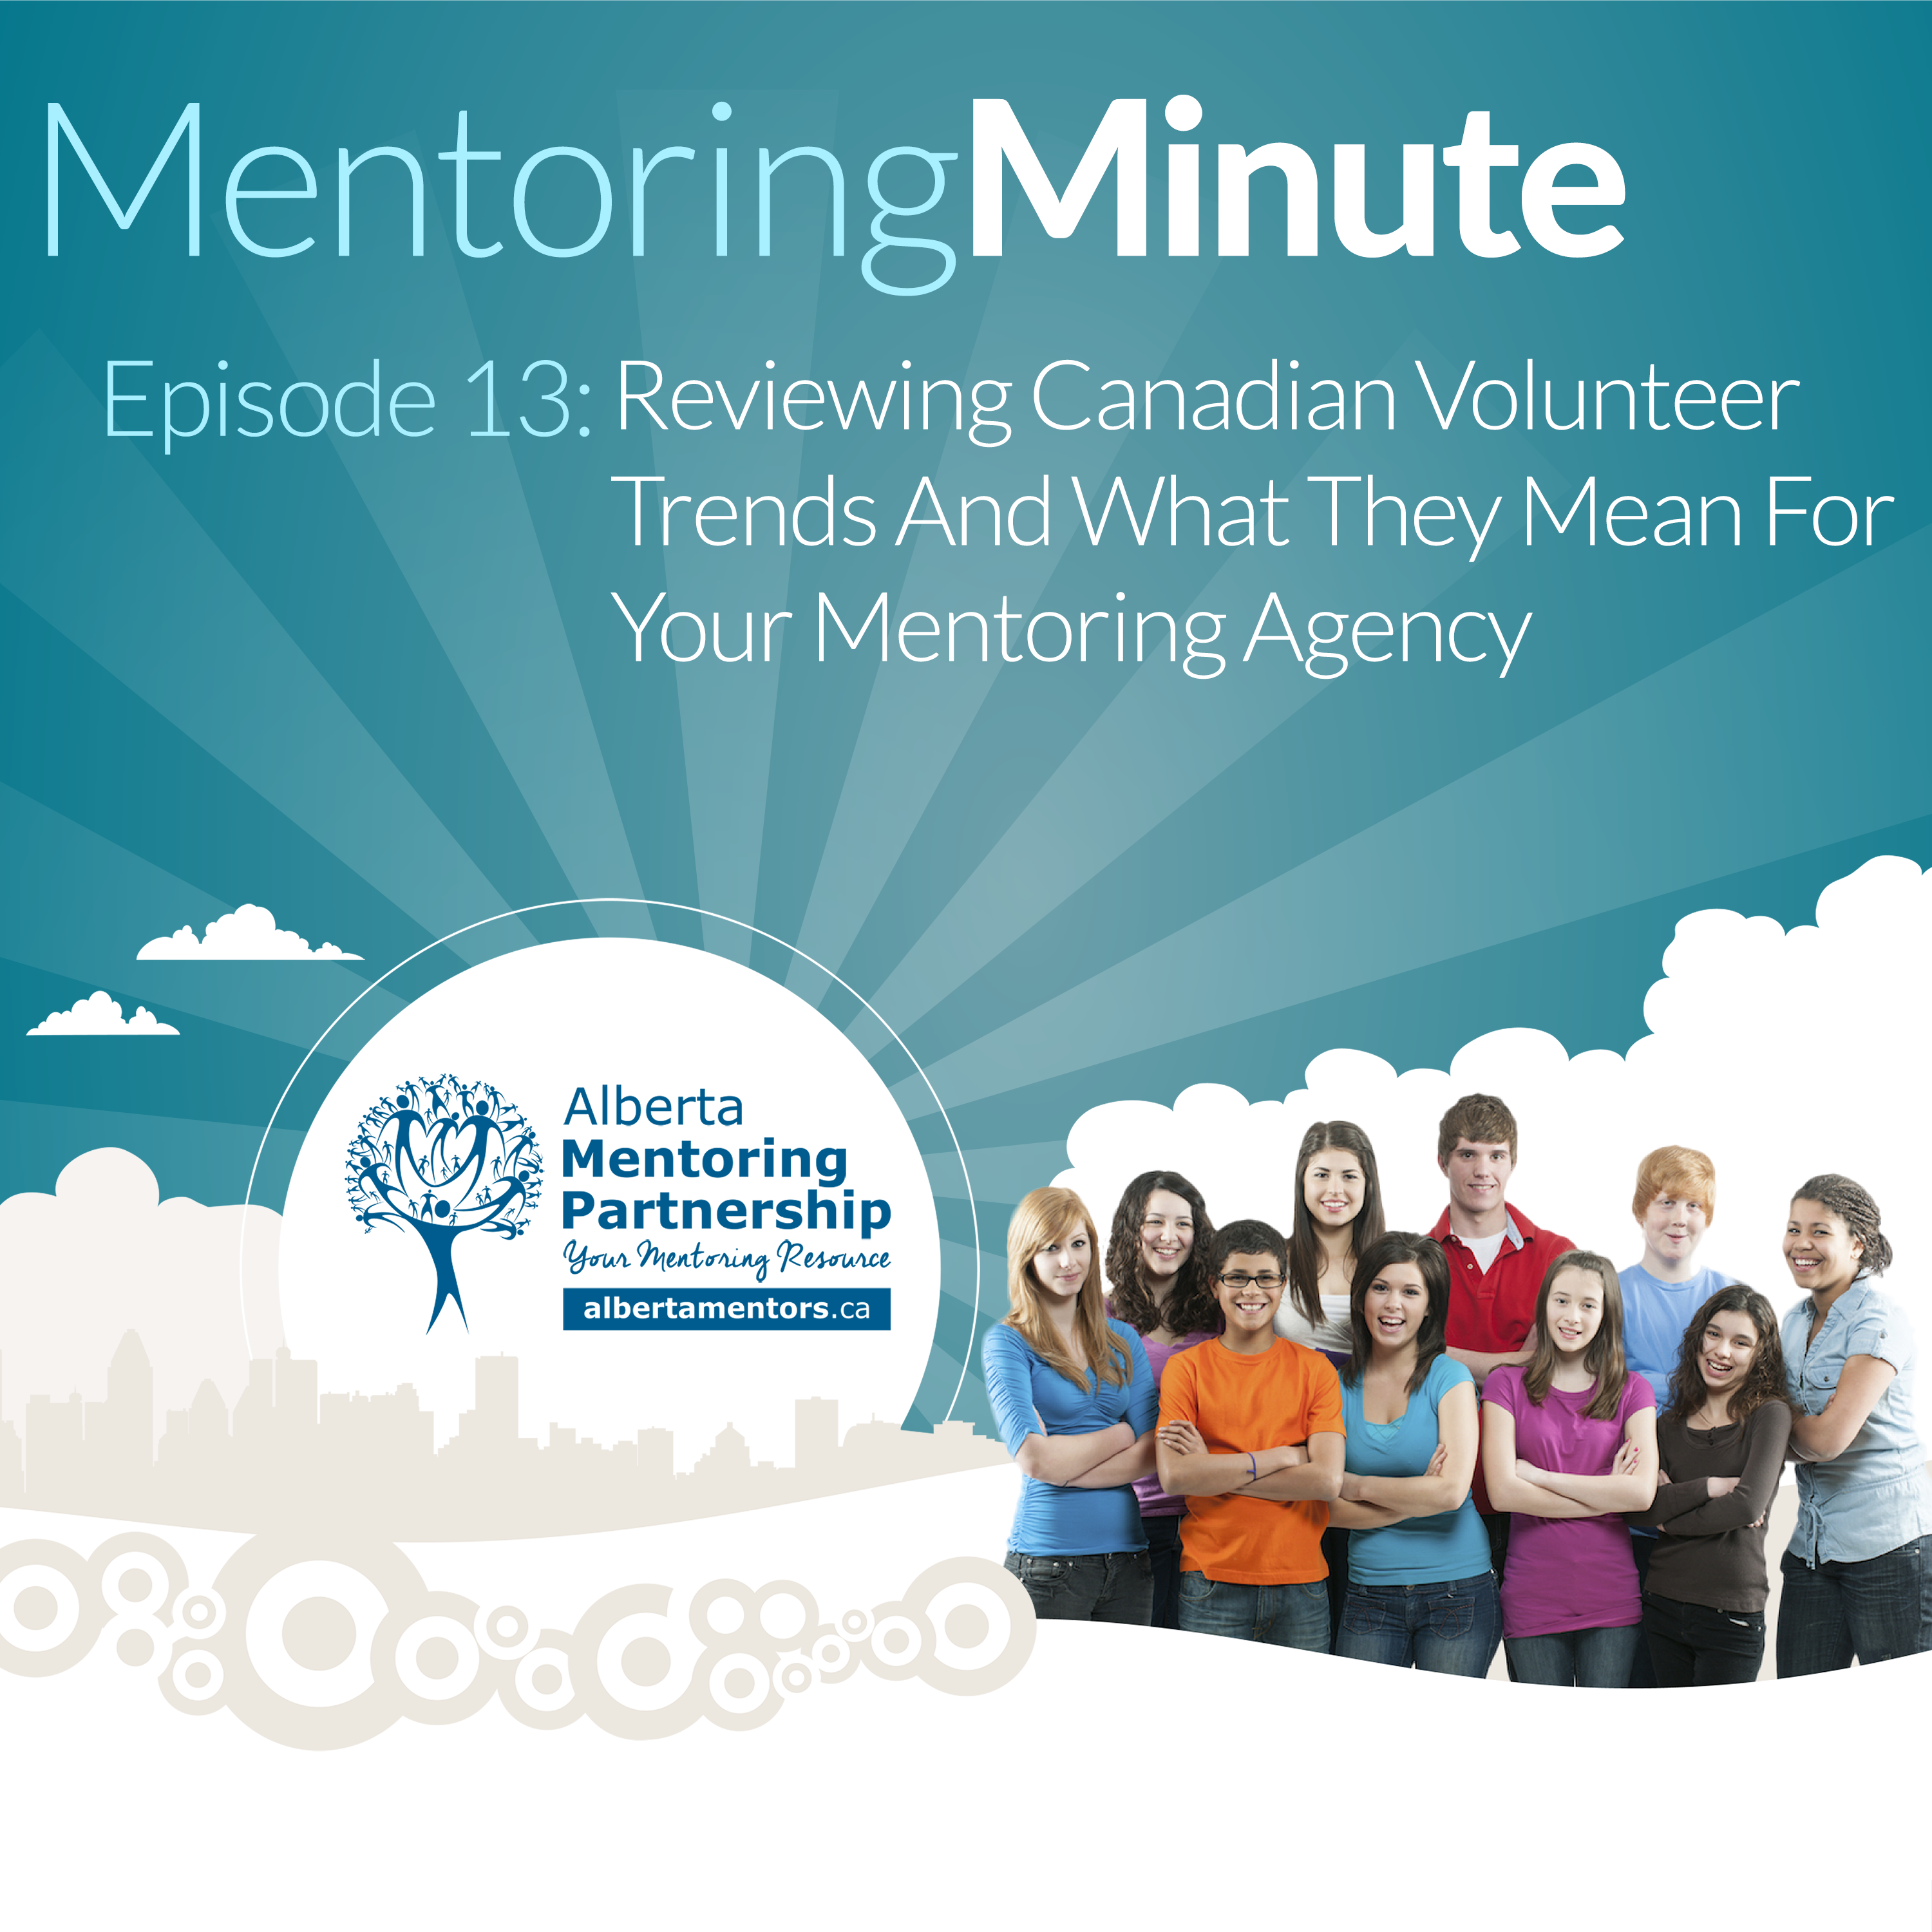 Episode 13 Reviewing Canadian Volunteer Trends and What They mean for Your Mentoring Agency